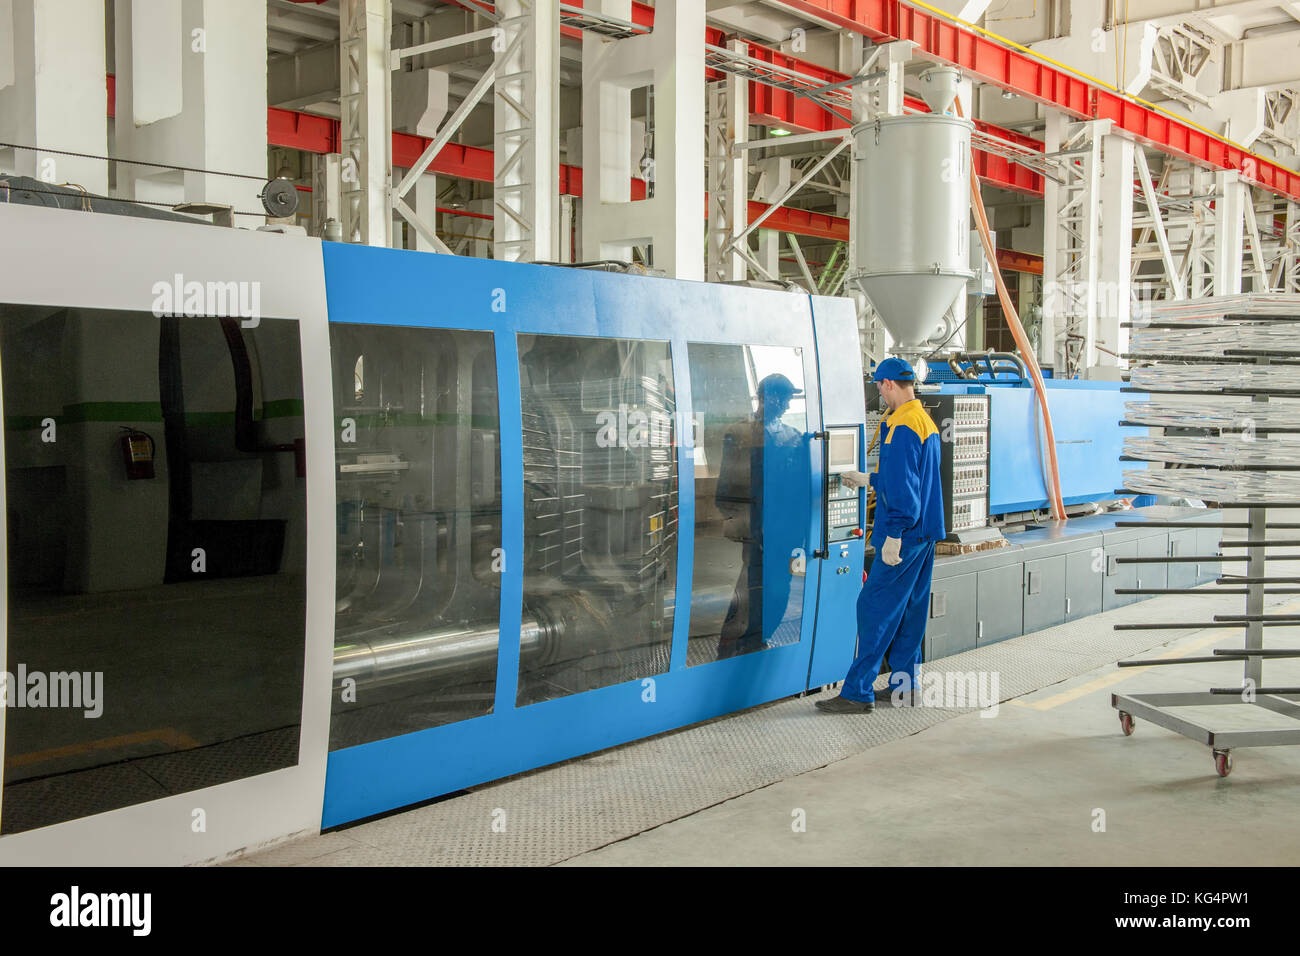 Industrial injection molding press machine for the manufacture of plastic parts using polymers in the management - Stock Image